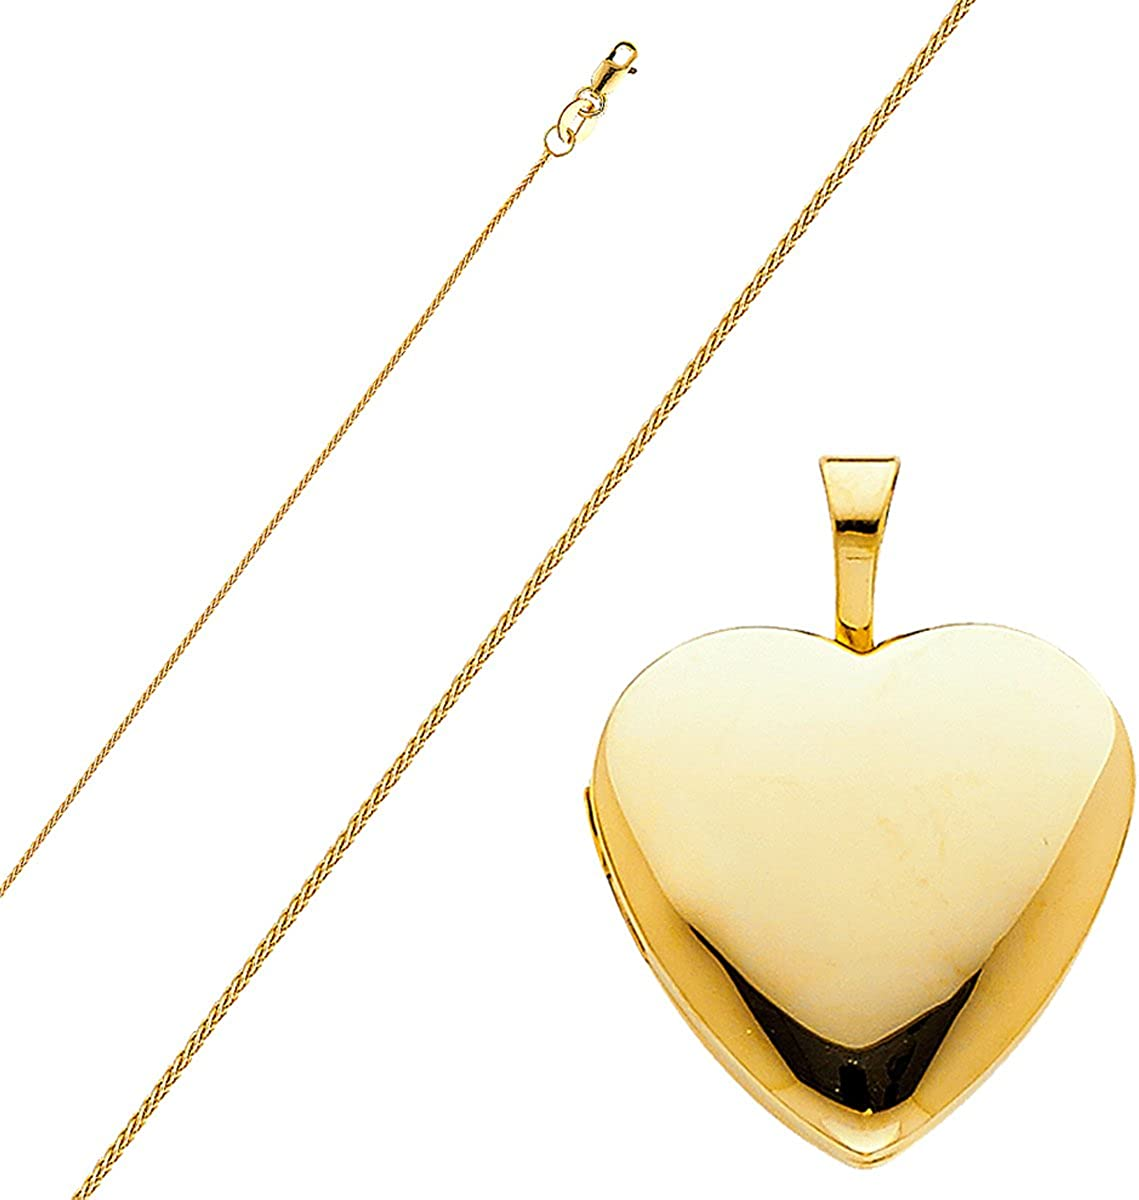 14k Yellow Gold Heart Locket Pendant with 0.8 mm Wheat Chain 16-22